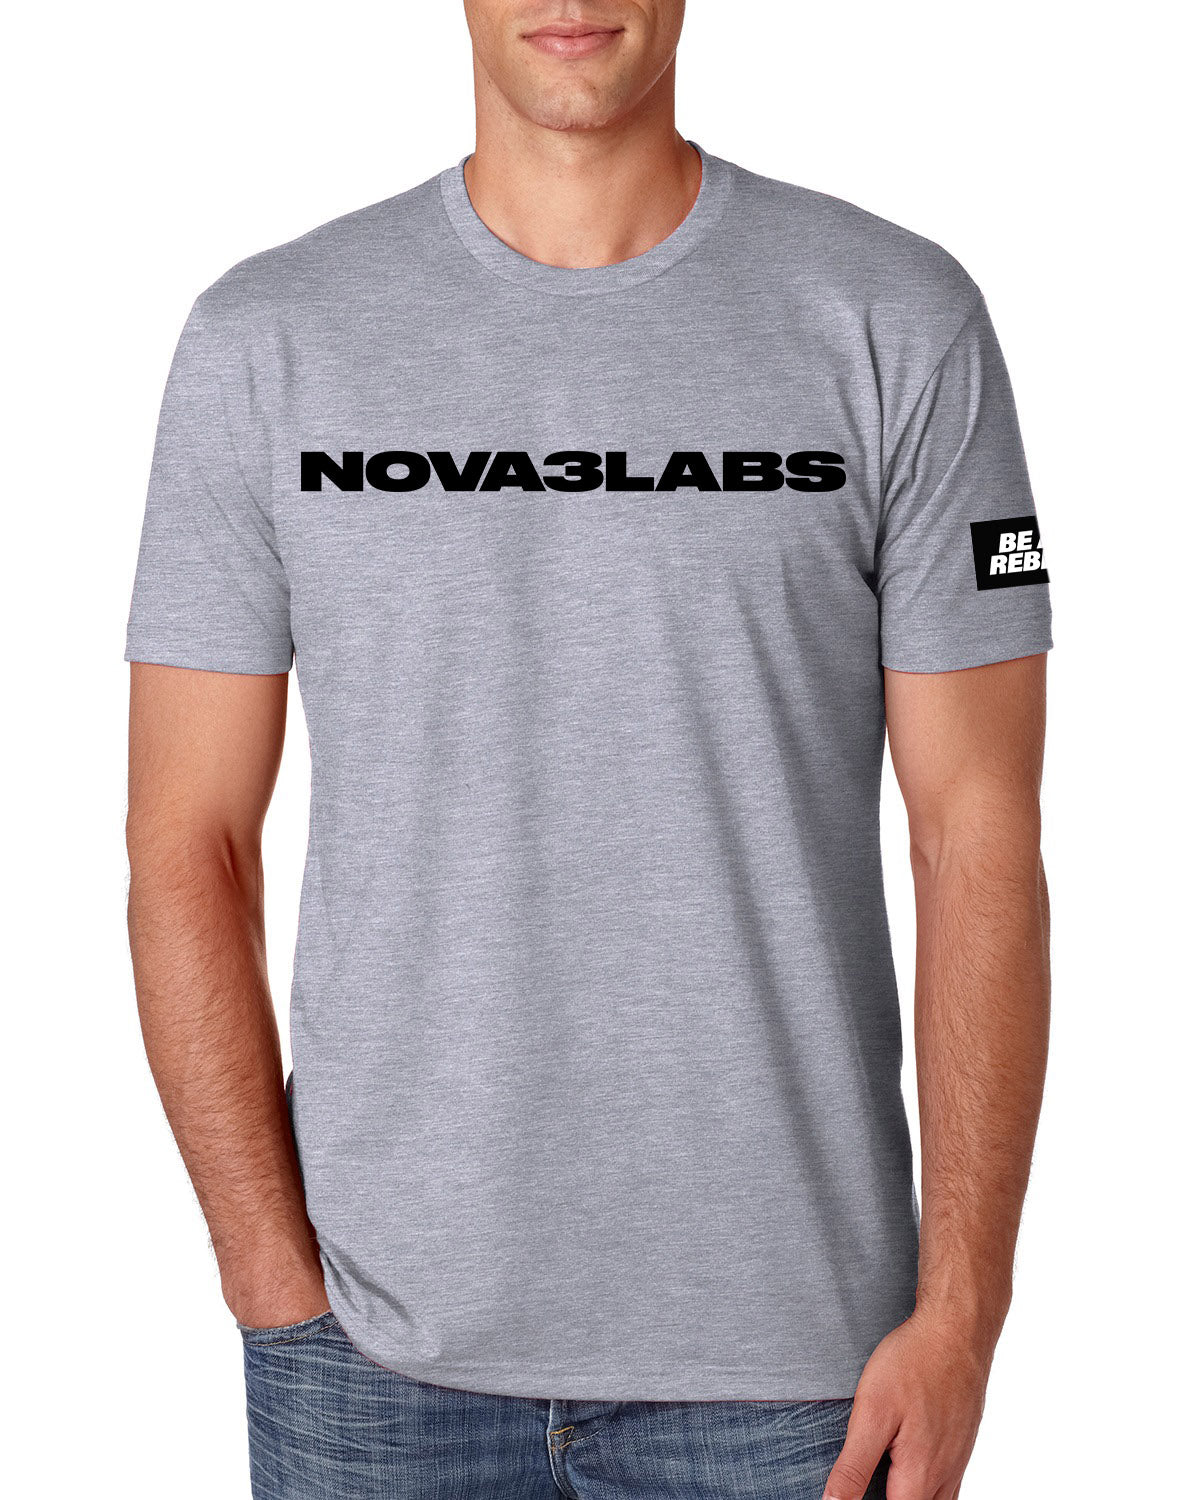 Nova3Labs Be A Rebel Grey Tee